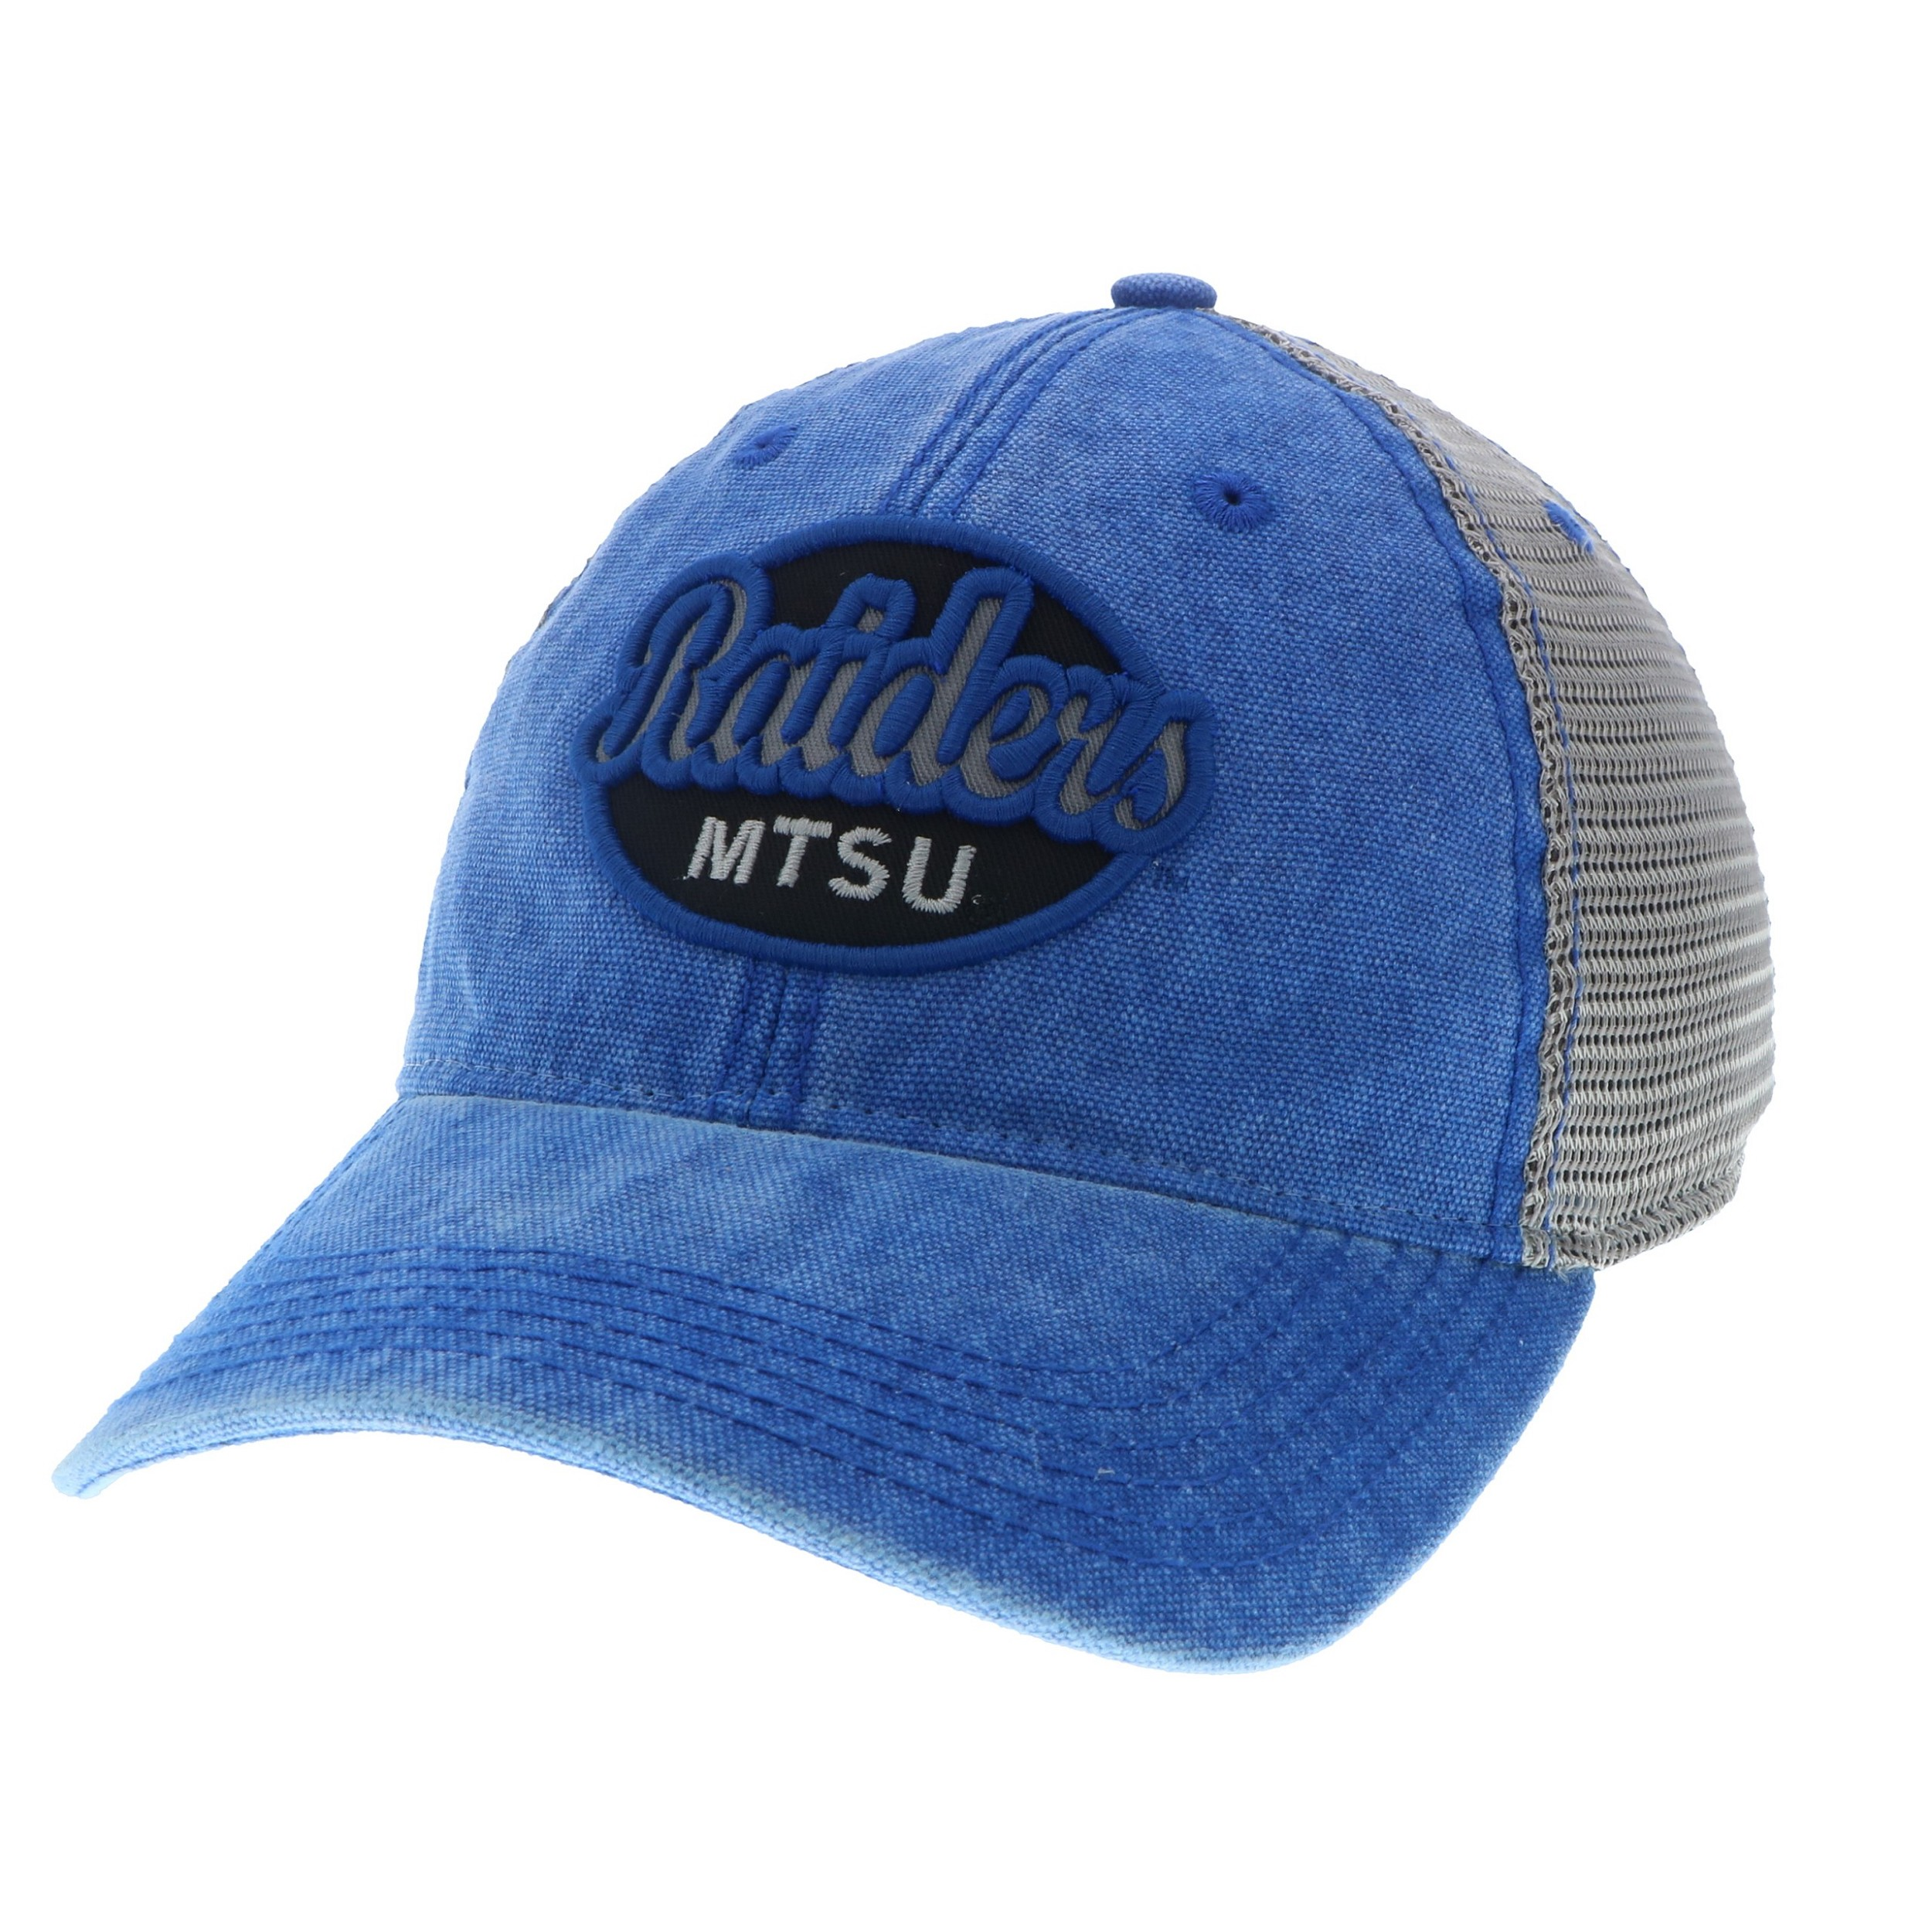 3cf38d192293a Textbook Brokers - MTSU  Raiders MTSU Dashboard Trucker Hat